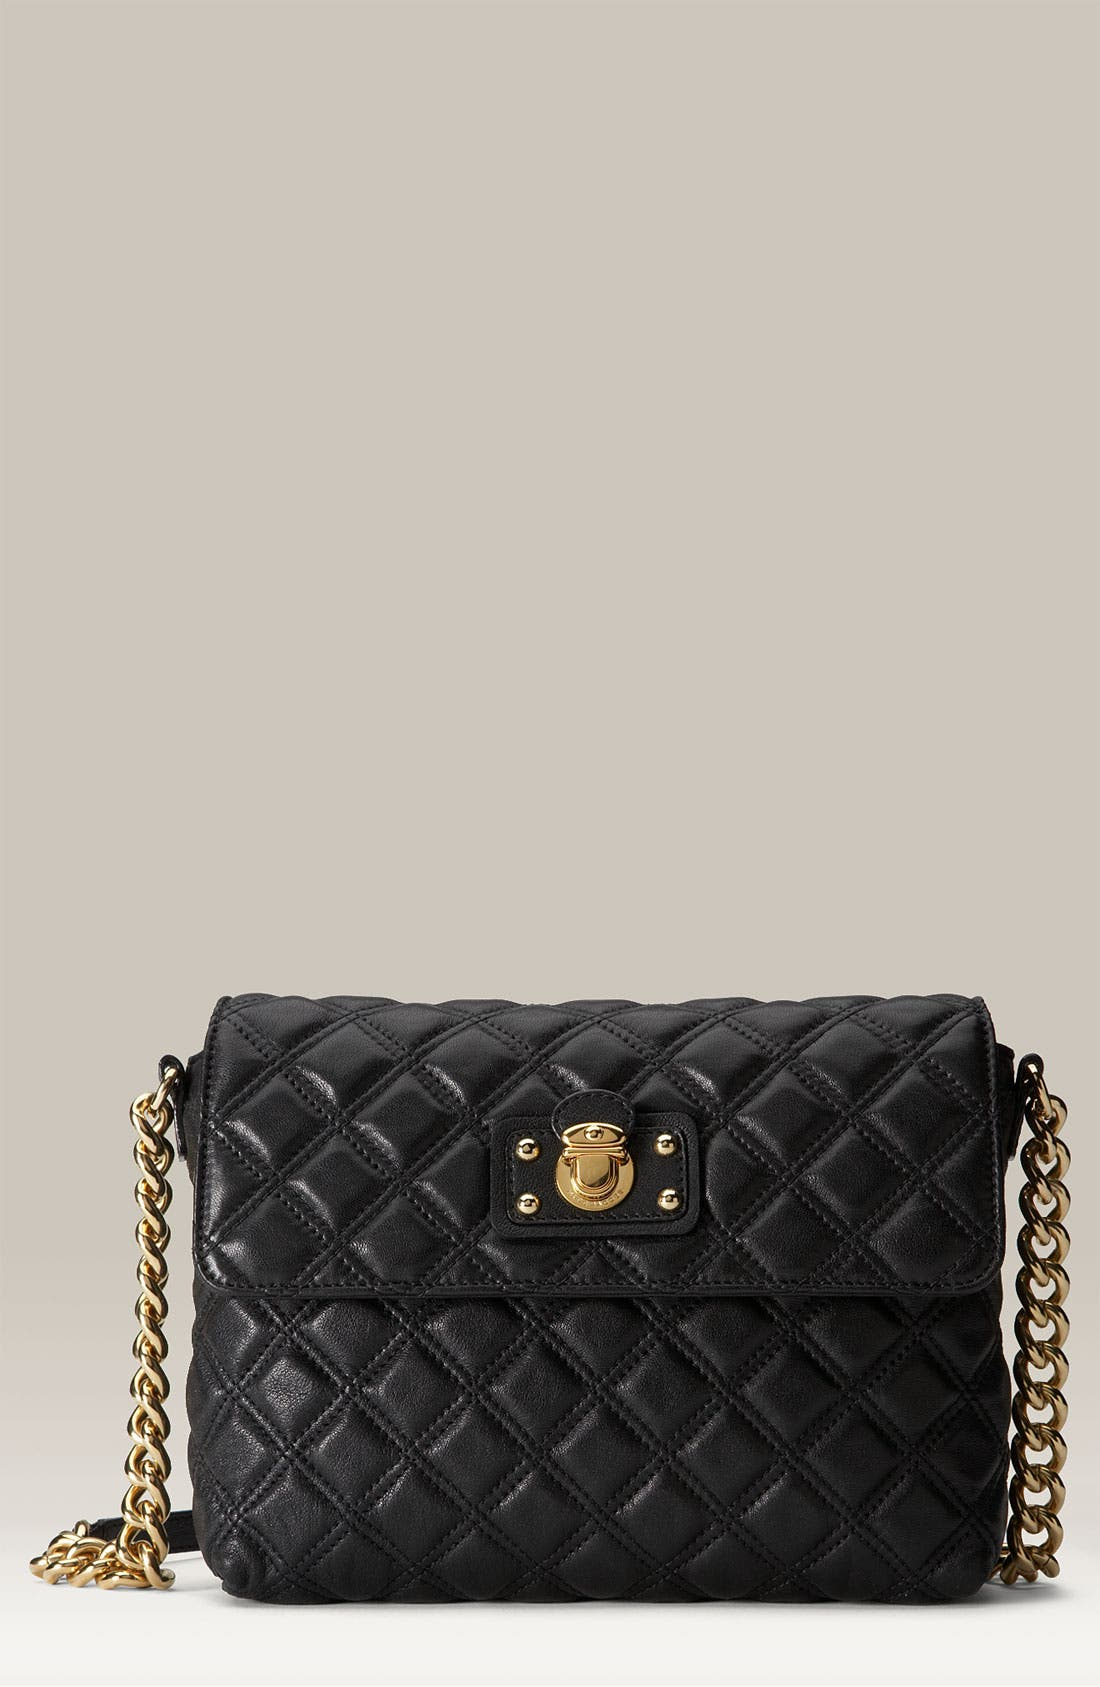 Alternate Image 1 Selected - MARC JACOBS 'The Large Single' Shoulder Bag